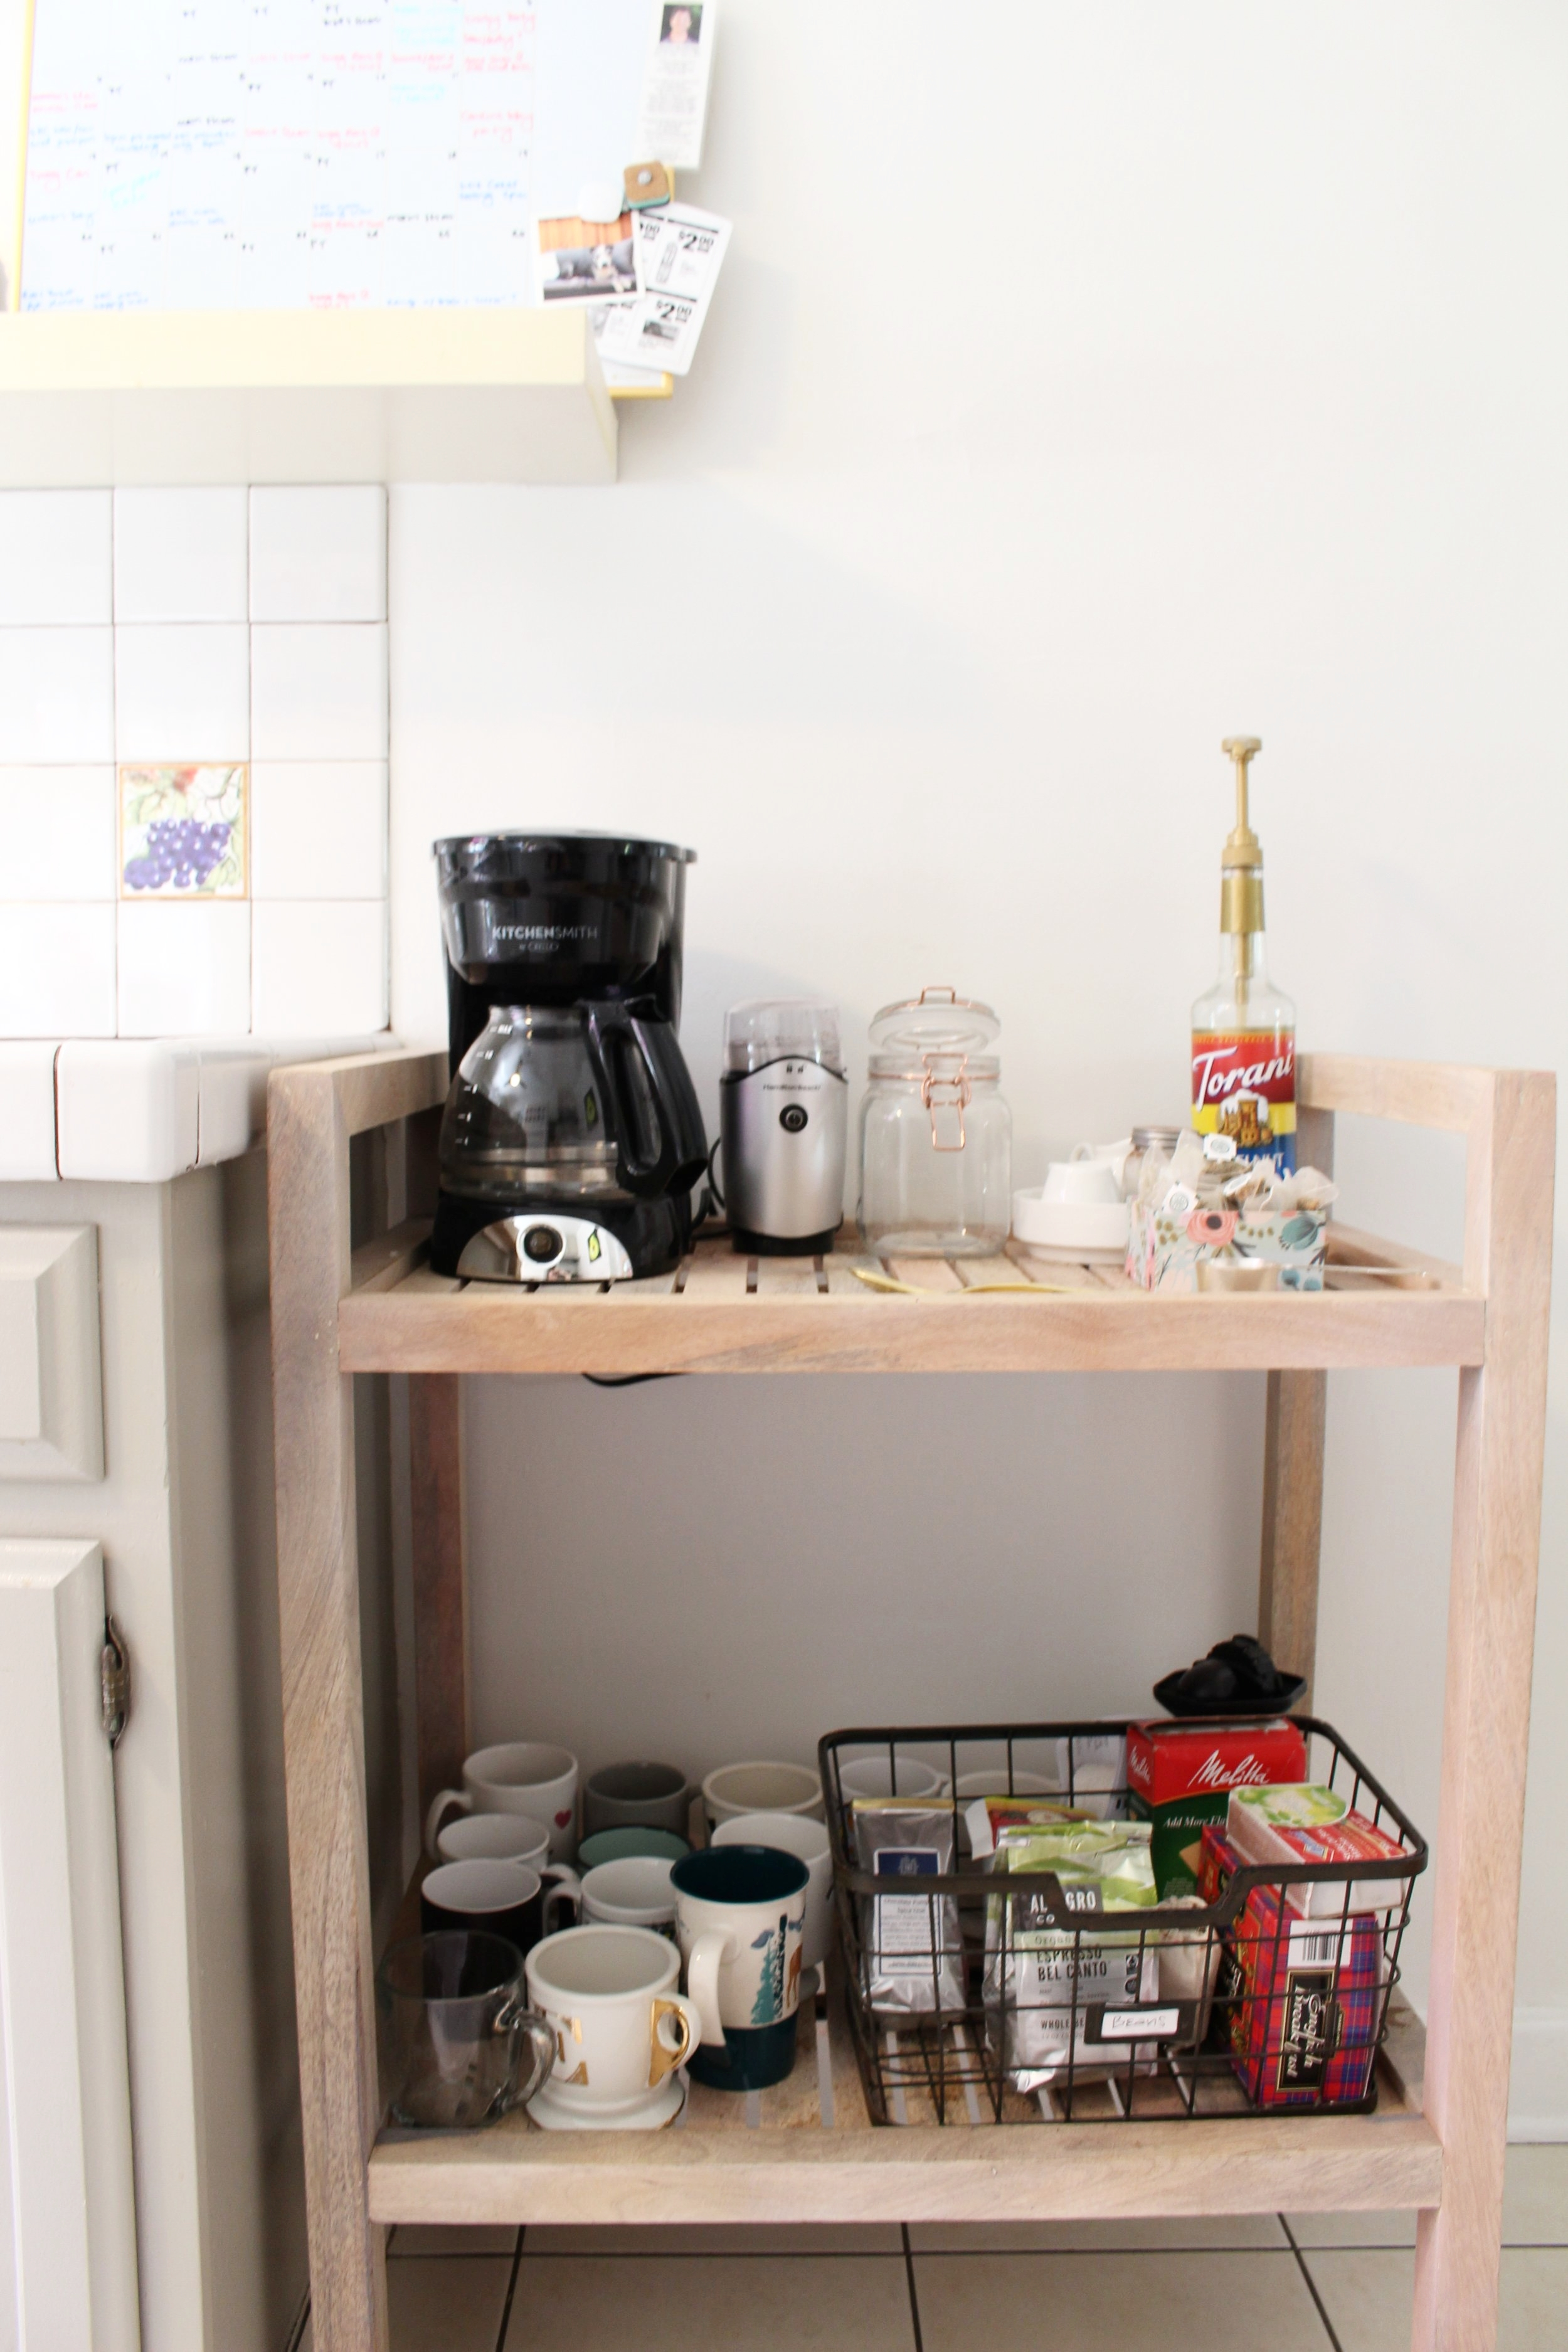 A coffee cart I bought & styled for Grace's birthday a couple of years ago. Coffee is Grace's love language for sure.